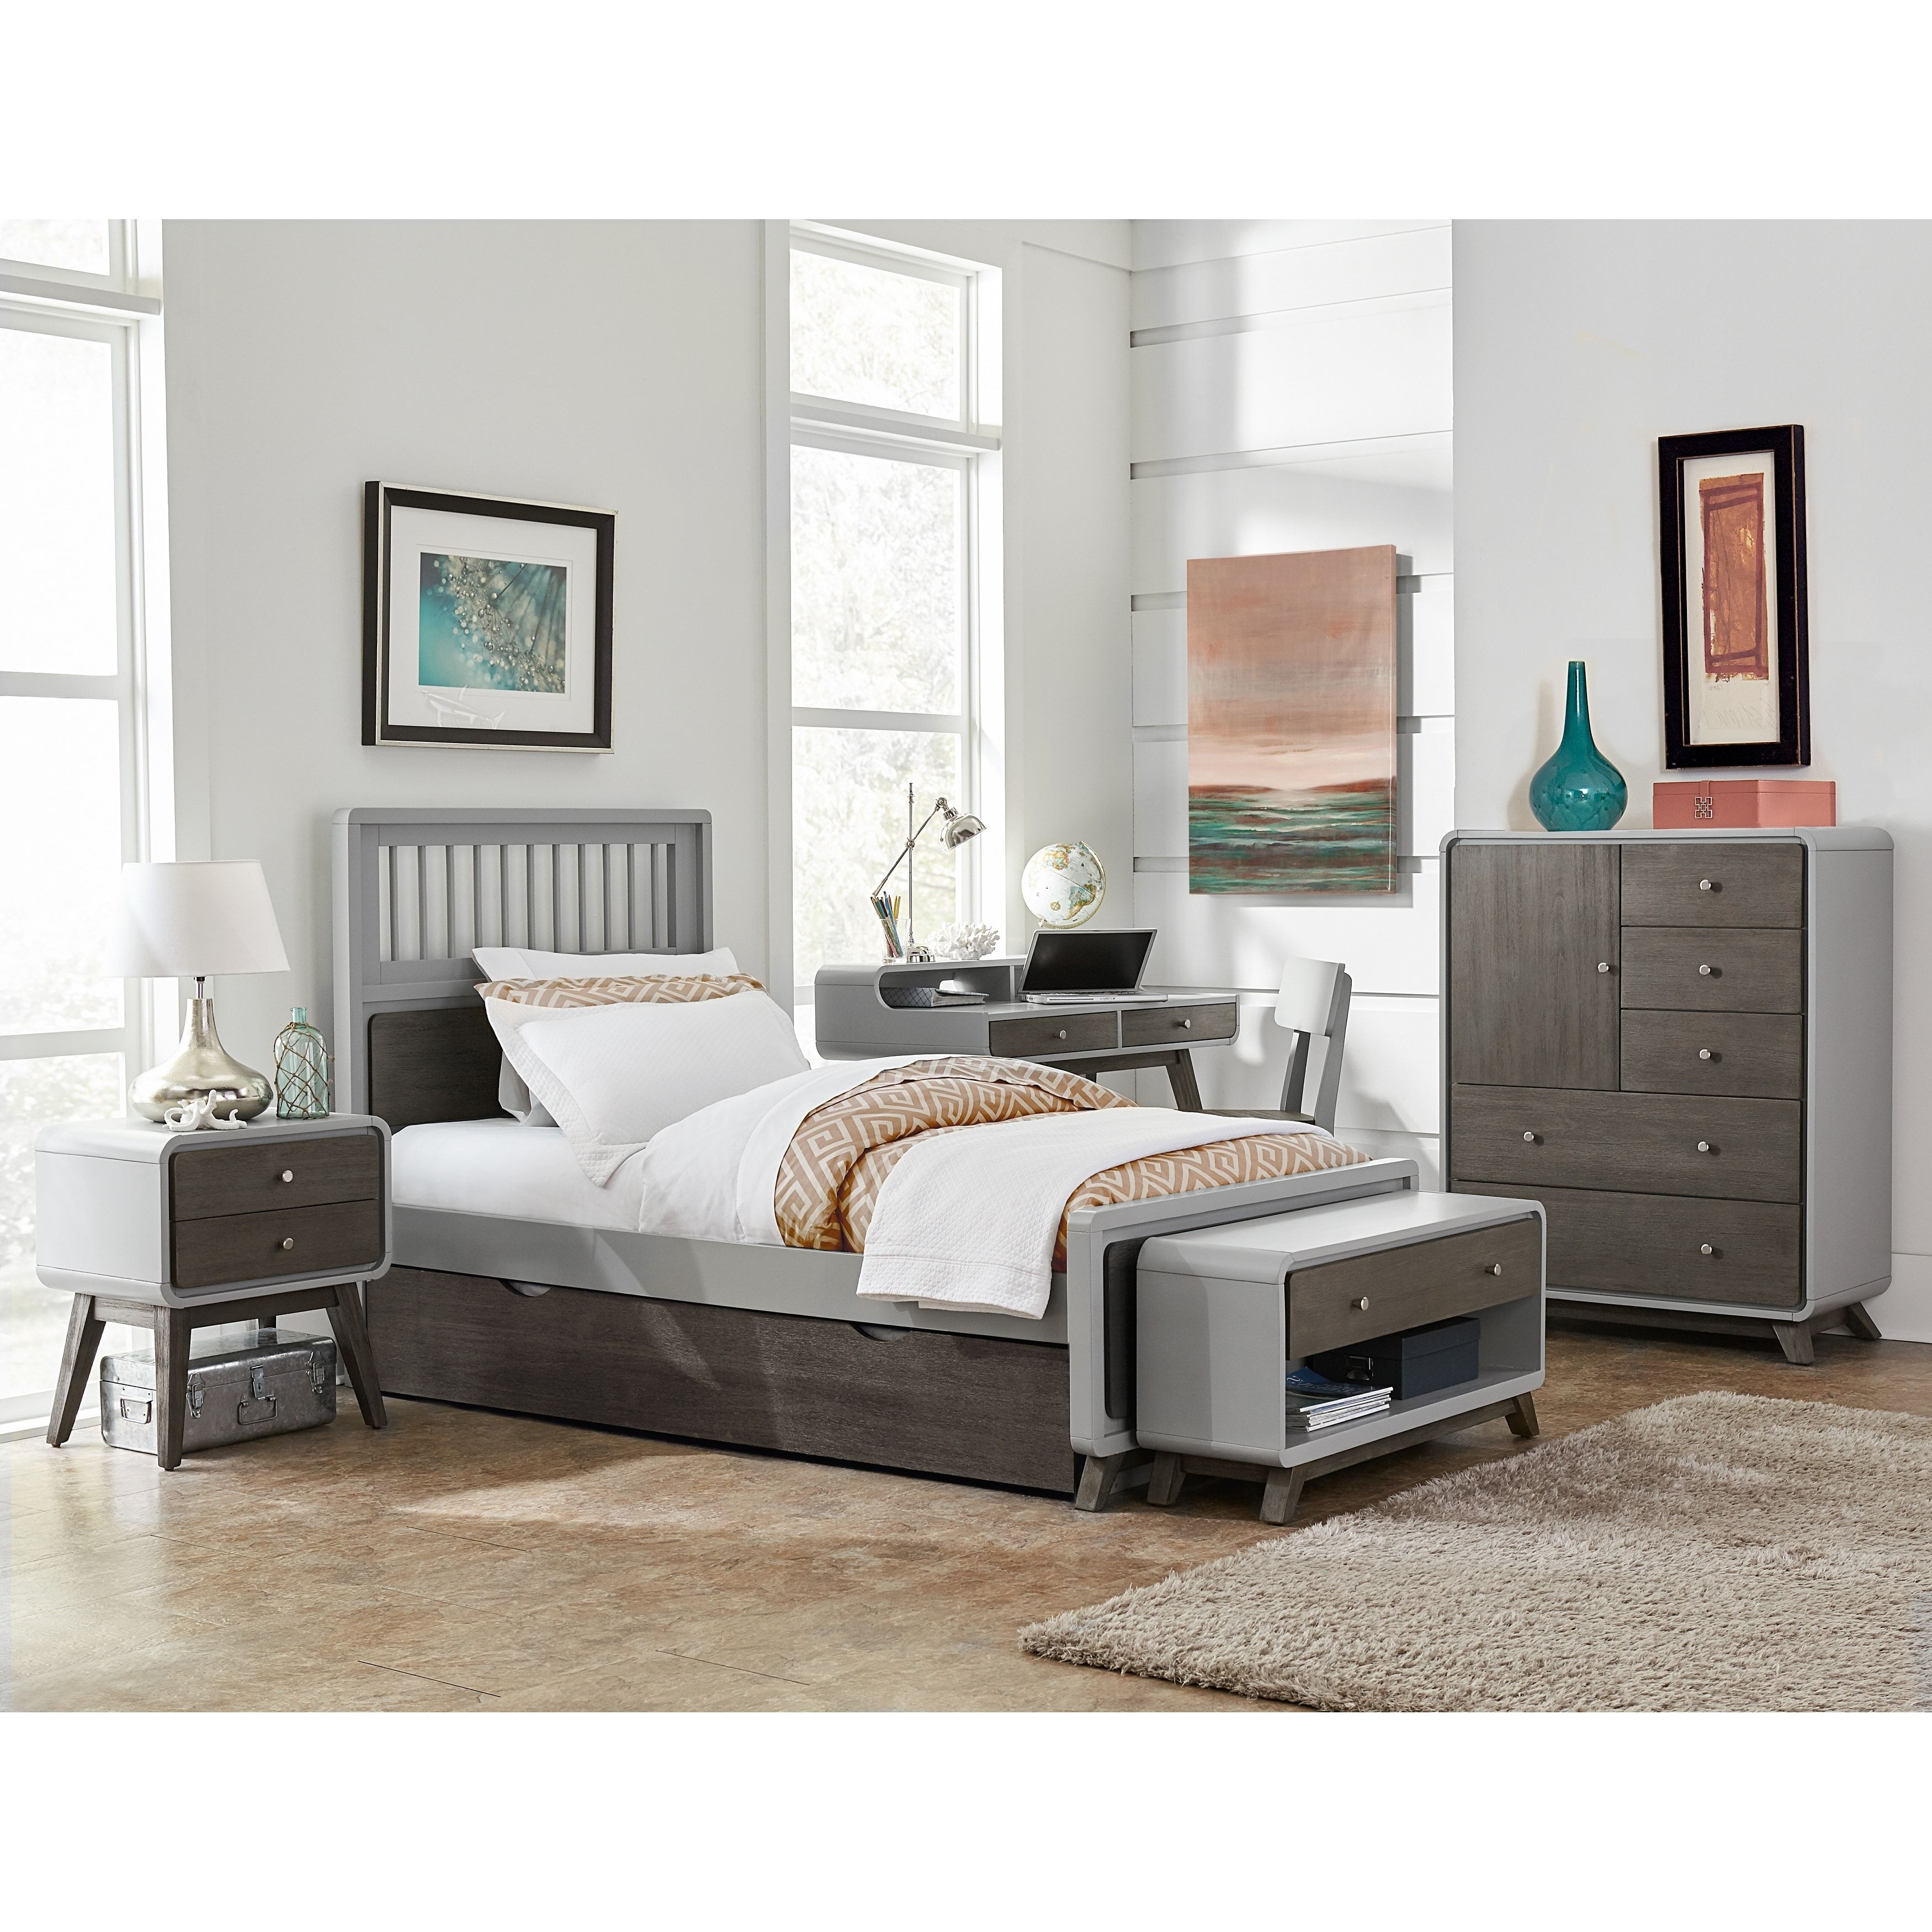 Hillsdale East End Grey Acacia Spindle Twin Bed With Trundle